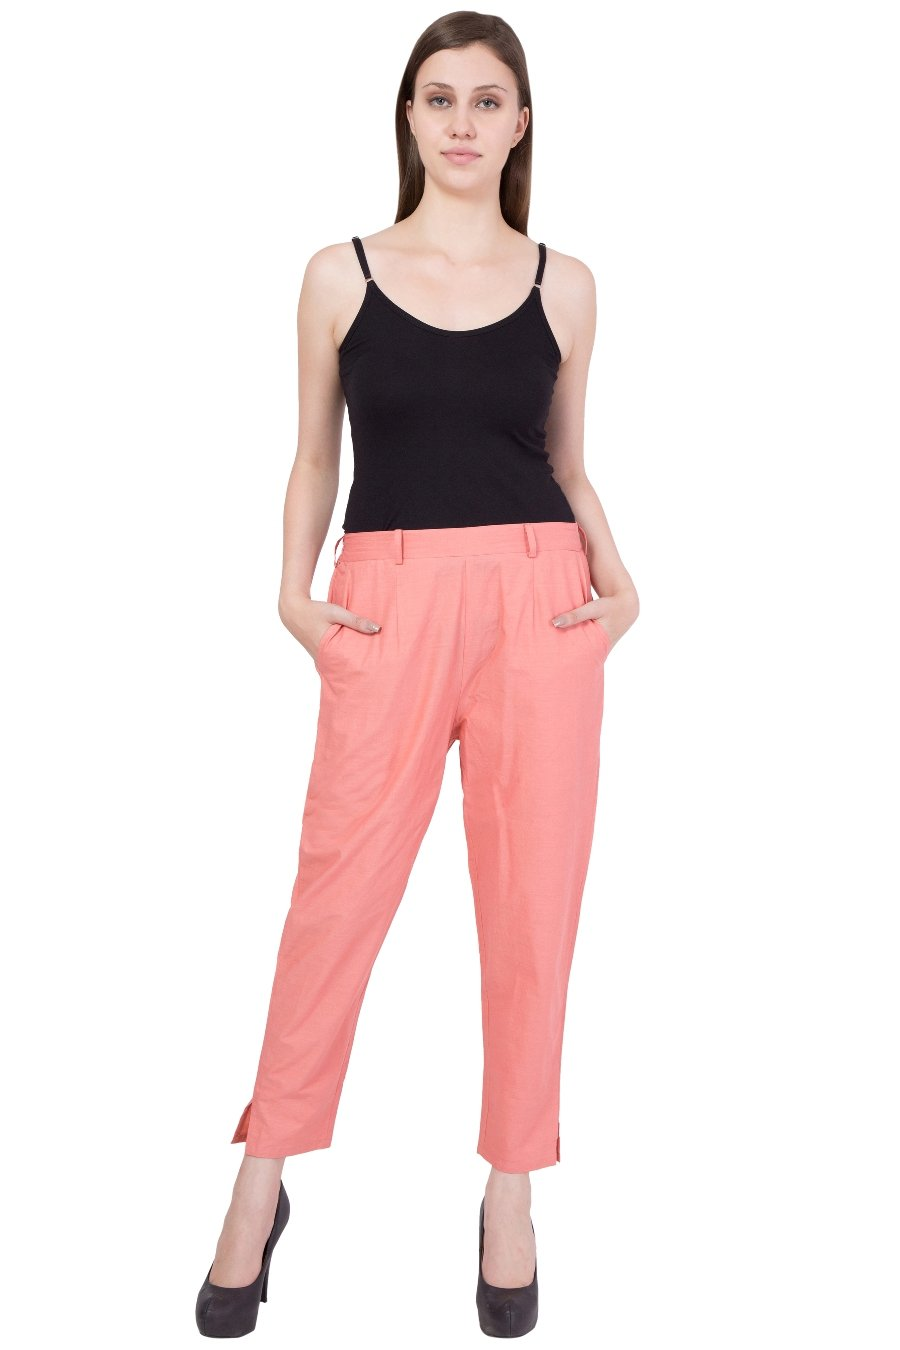 Cotton Pant  in Peach Color  WMB000017